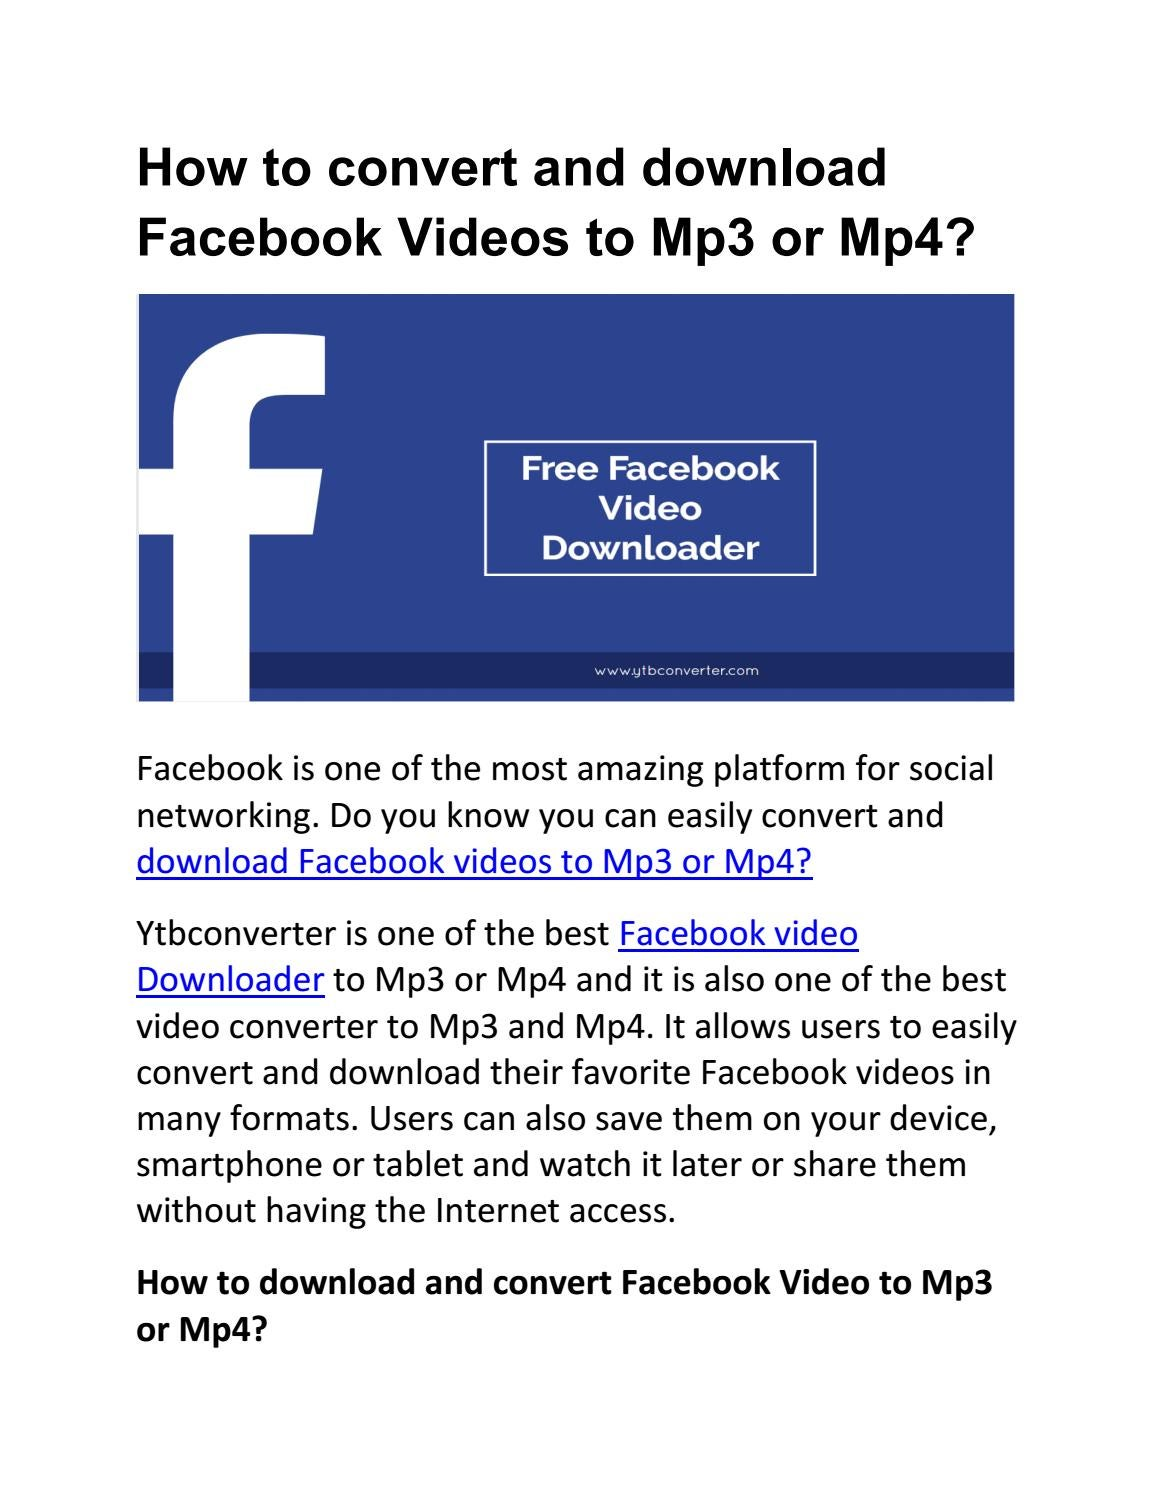 How to convert and download Facebook Videos to Mp3 or Mp4 by